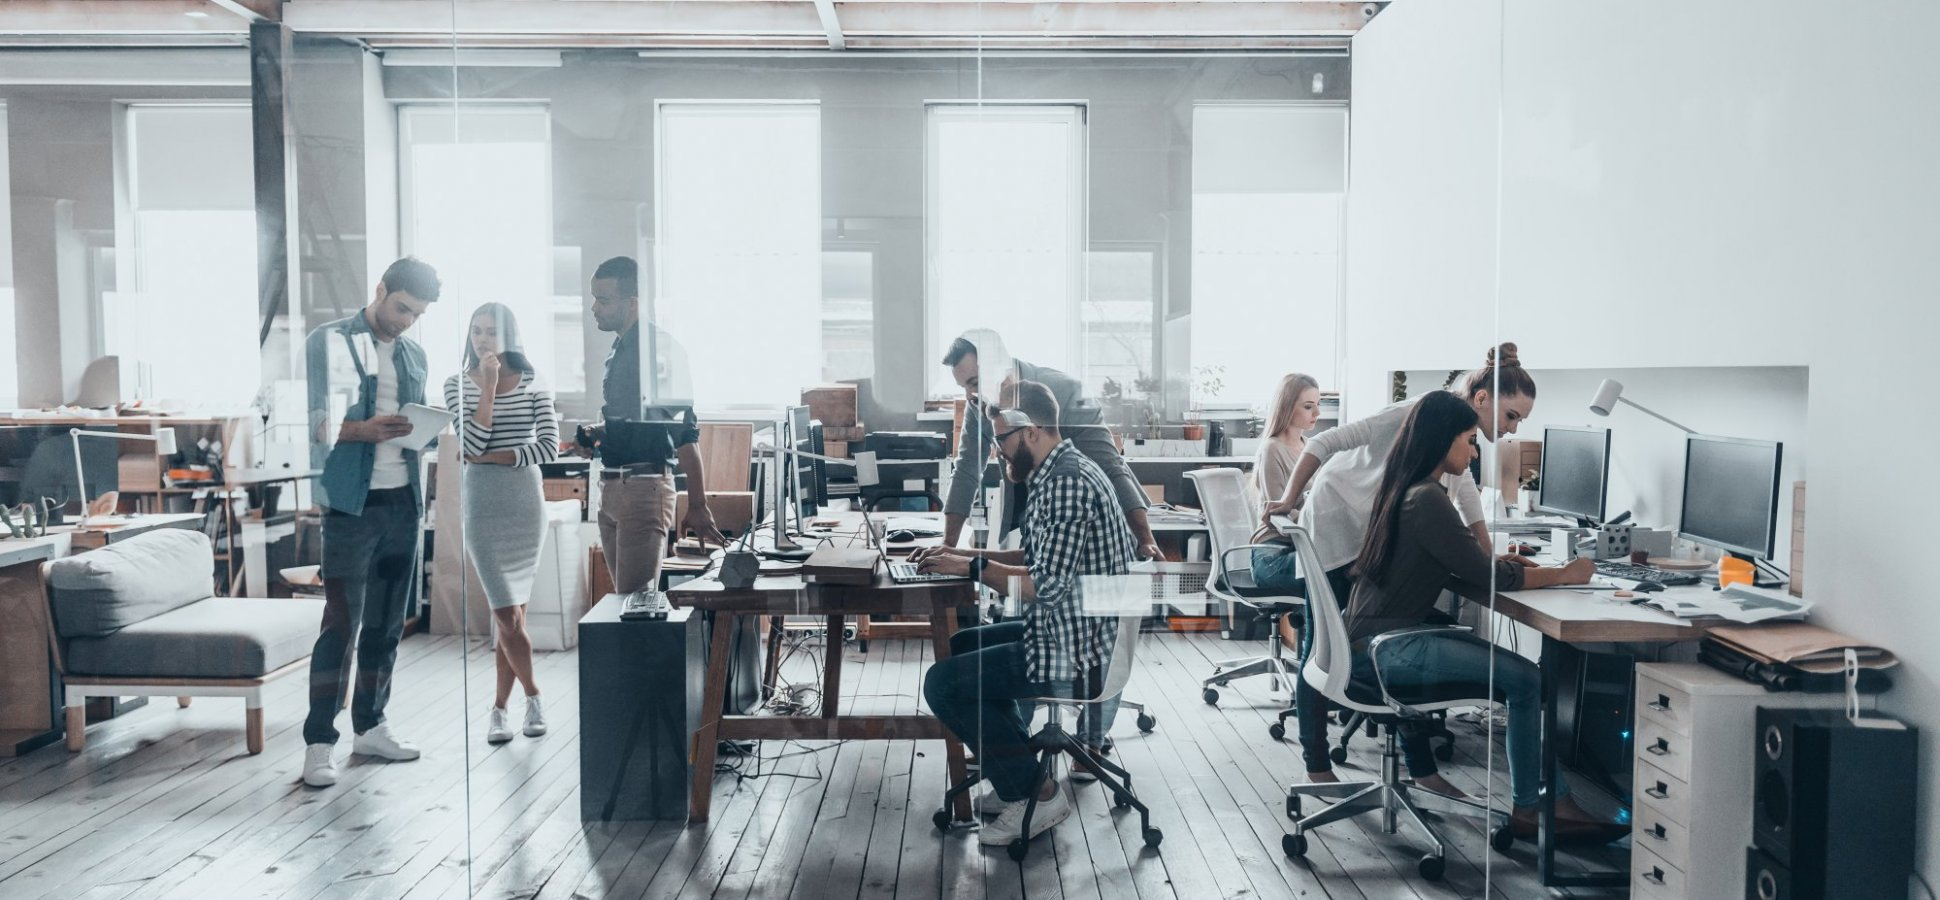 These Are the Pros and Cons of the Corporate World vs. the Startup Life